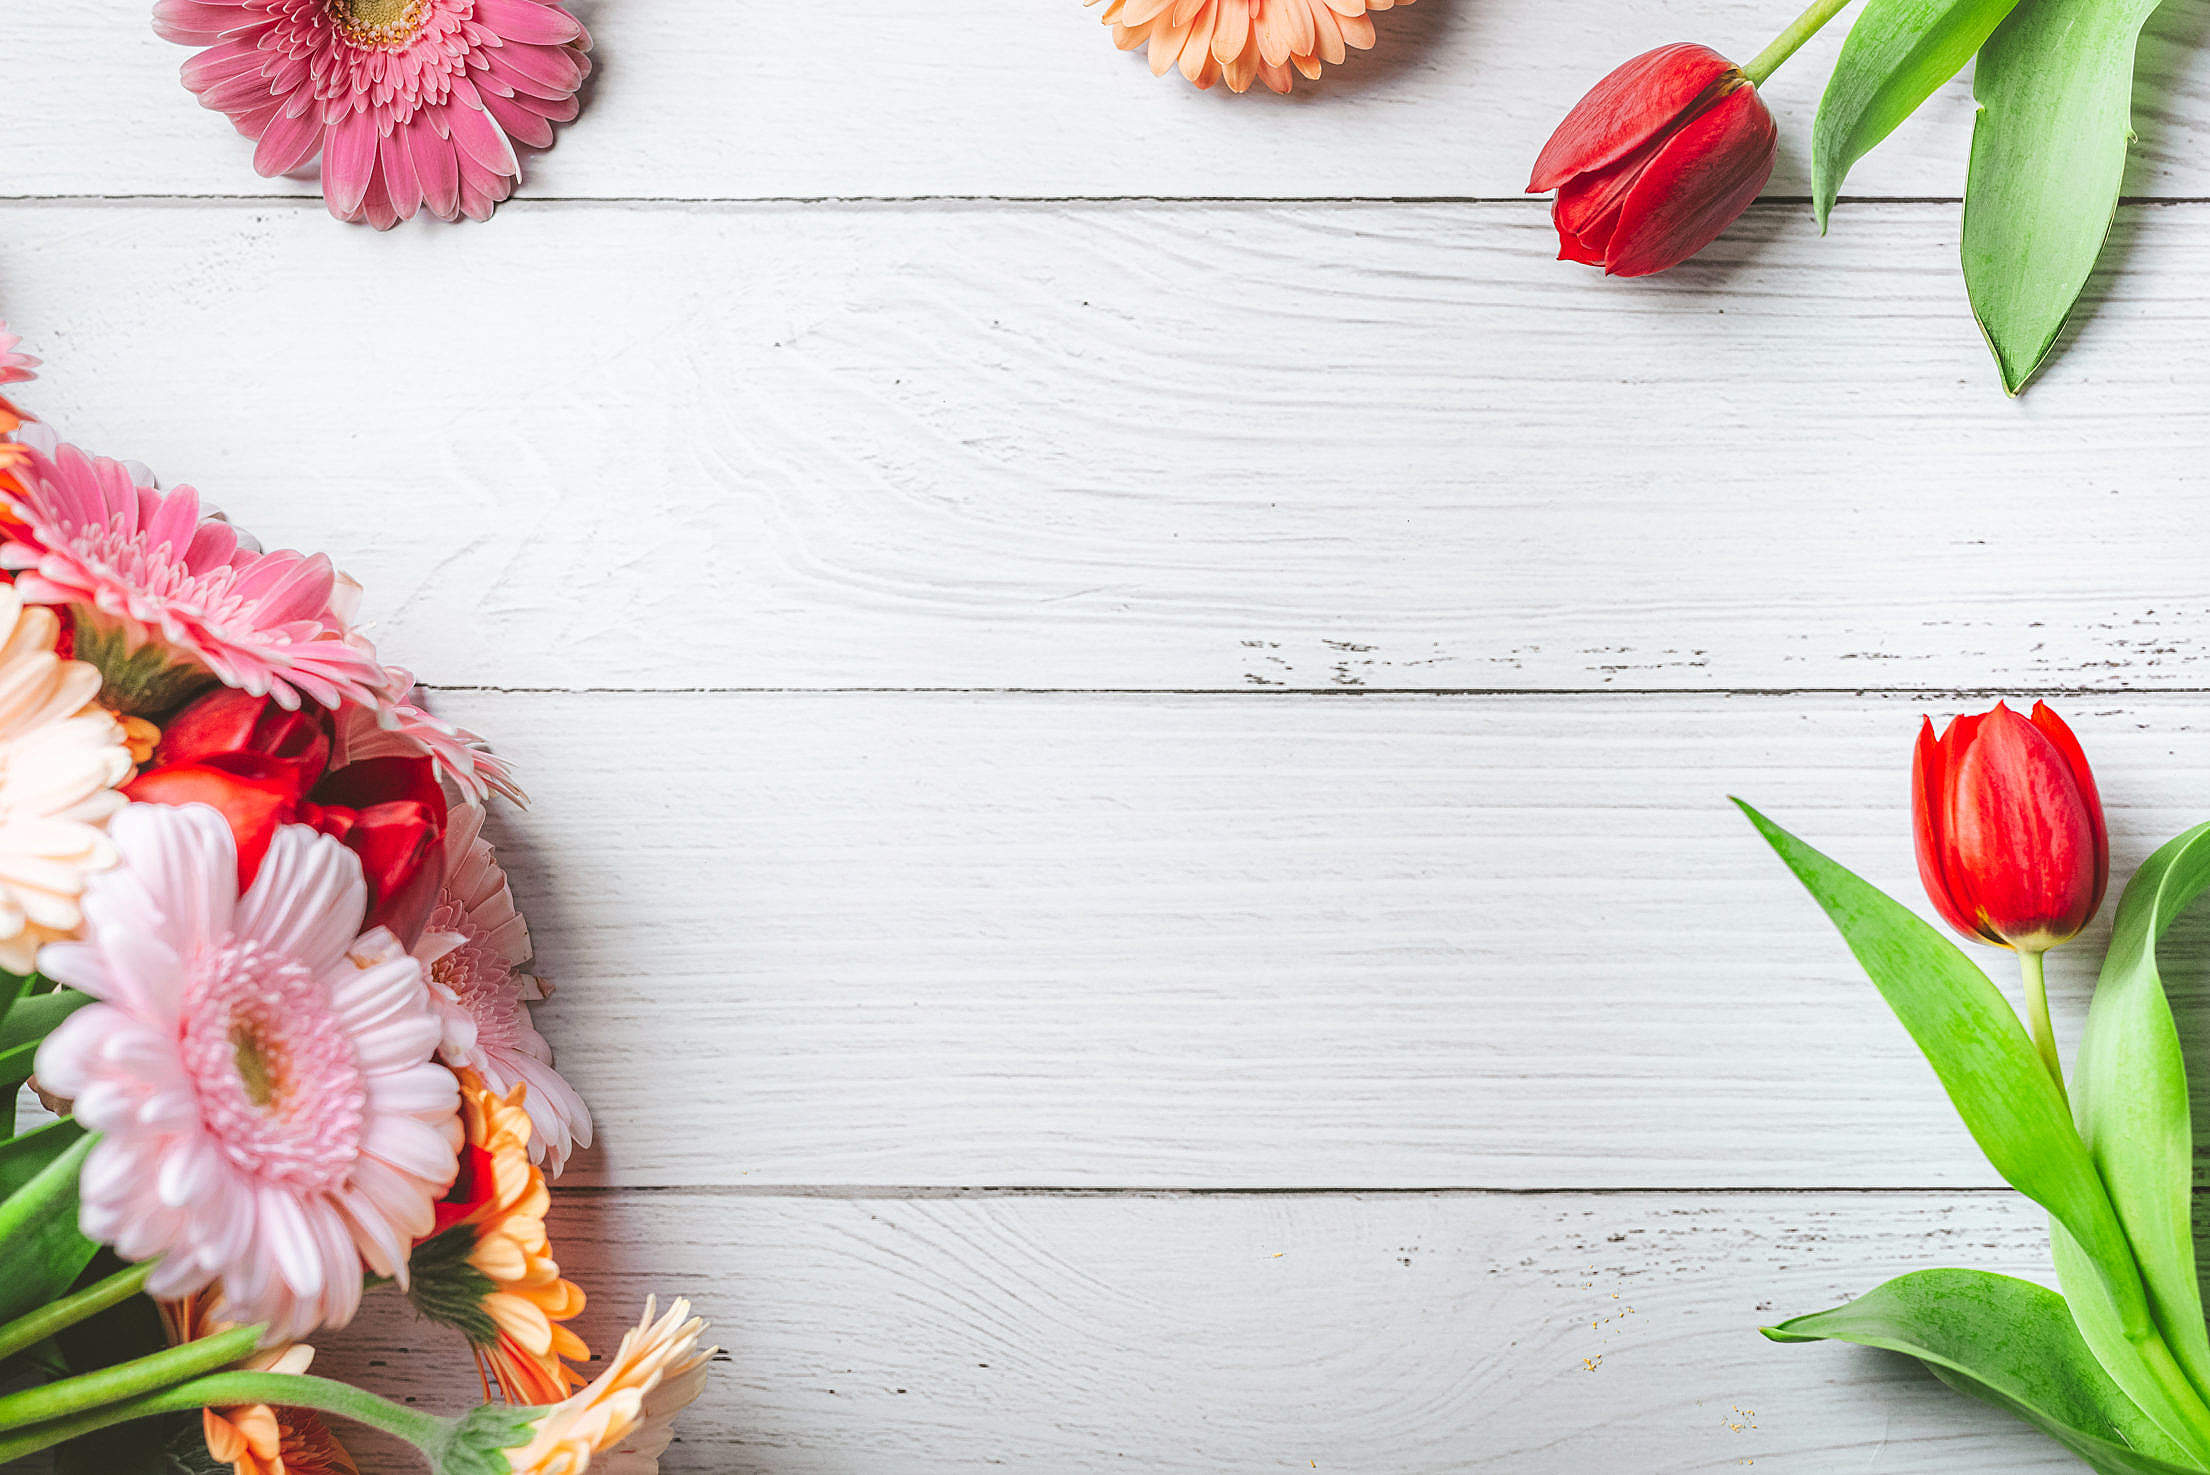 Spring Hero Background with Flowers Free Stock Photo